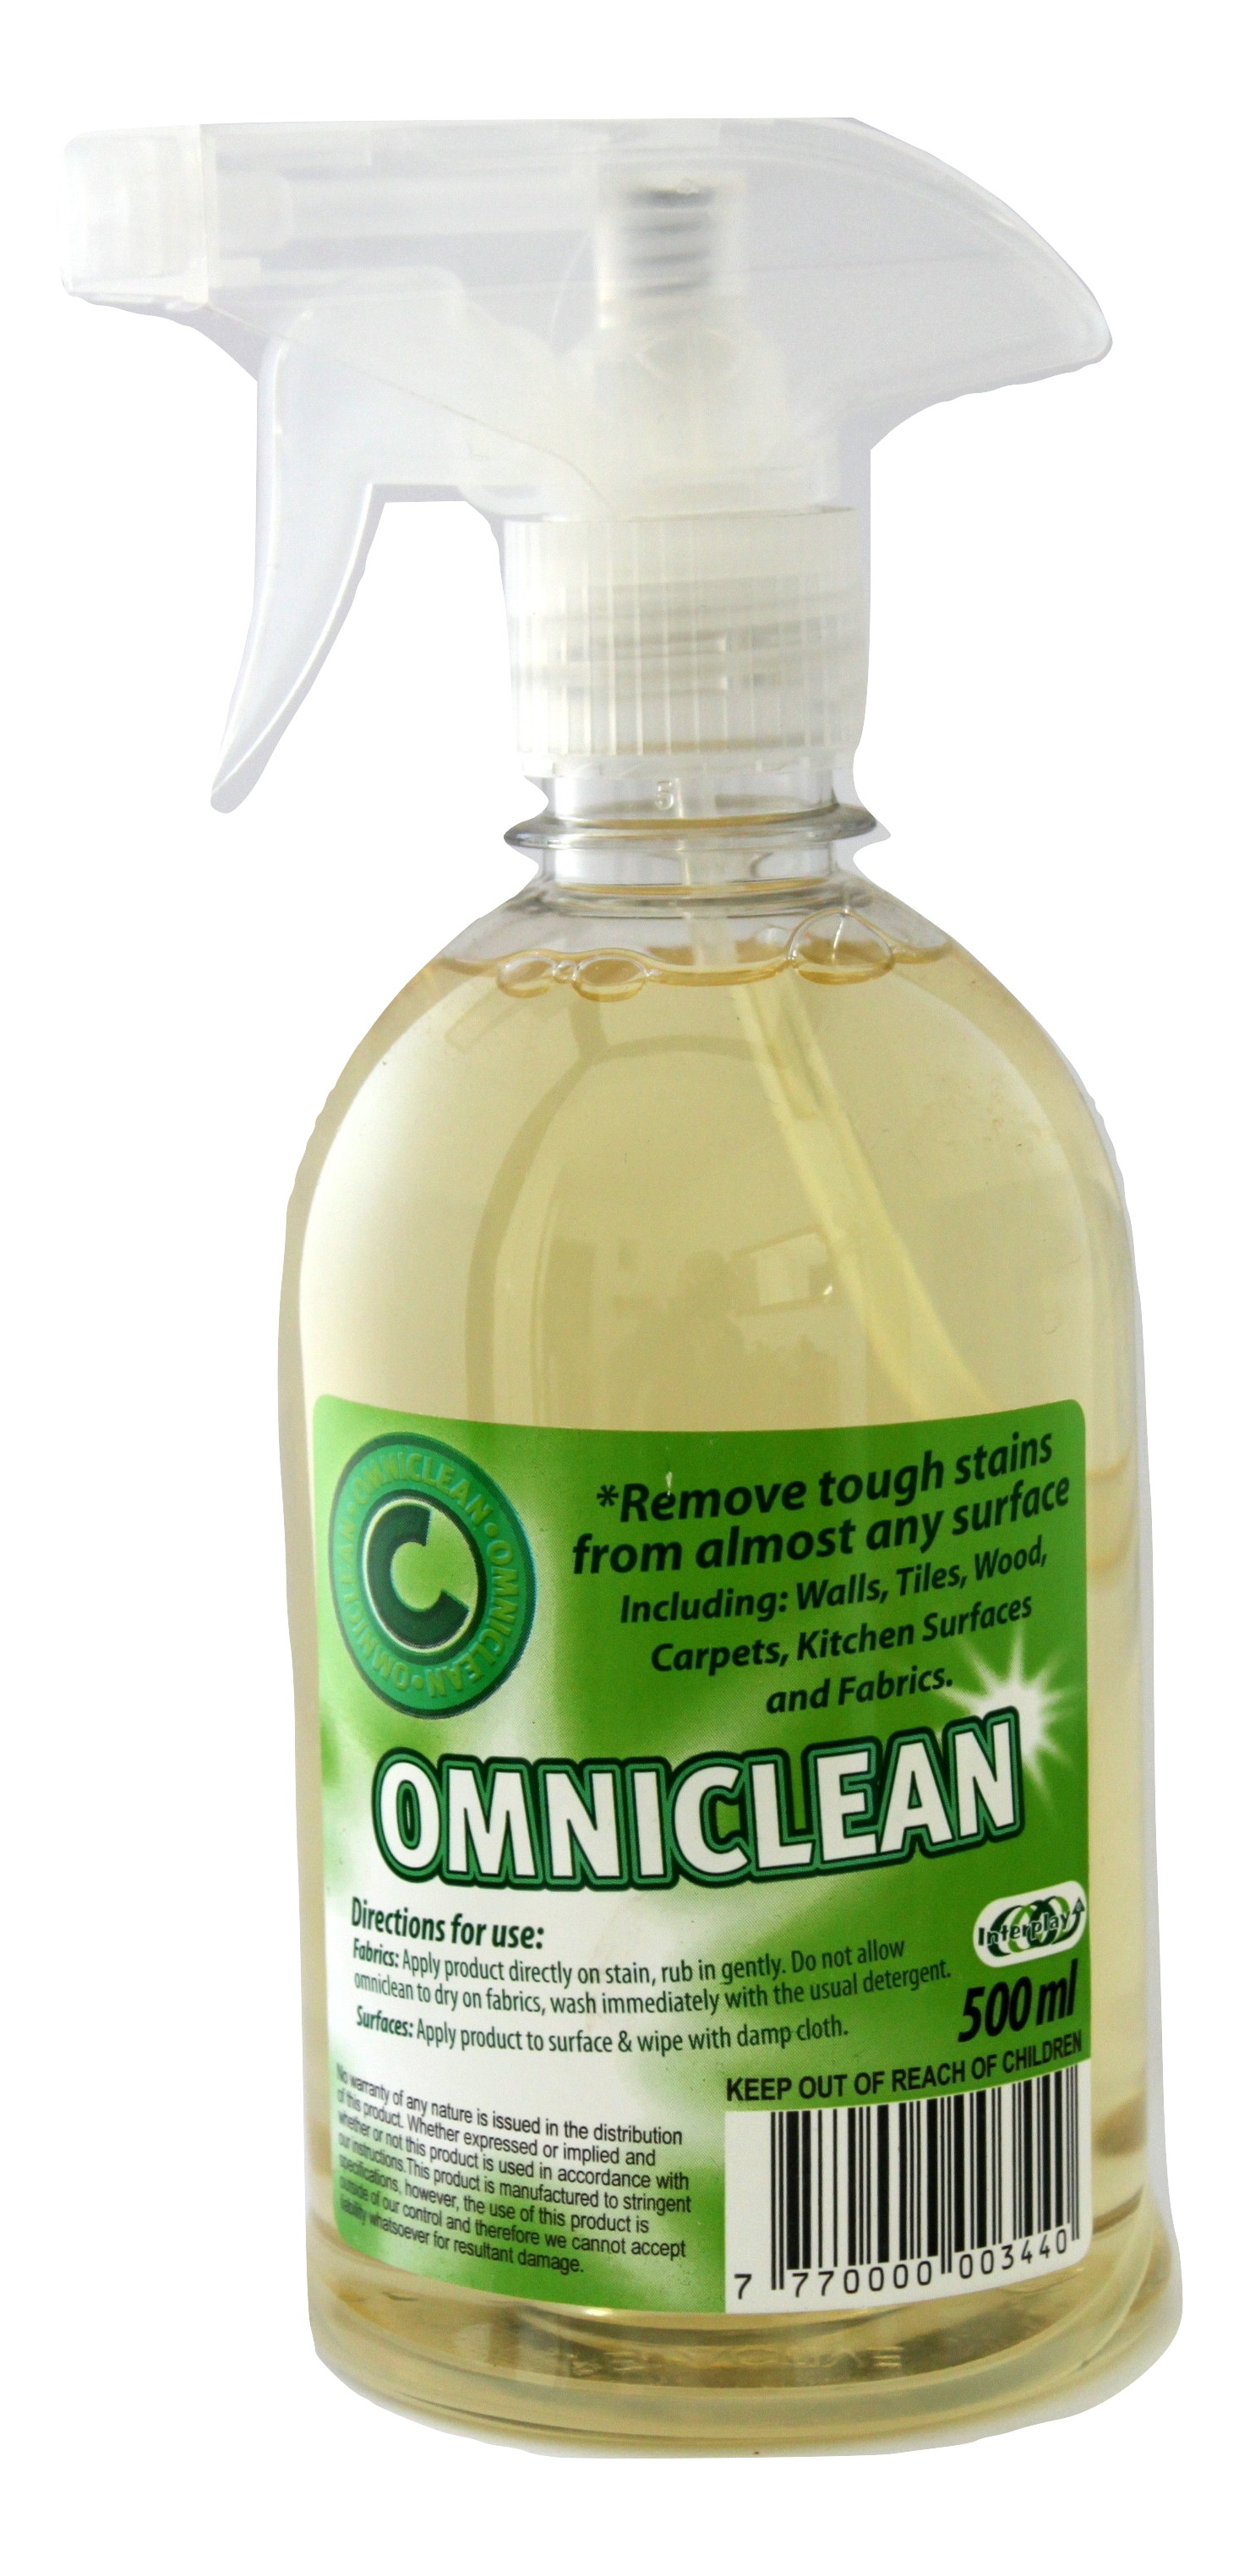 omniclean-general-purpose-cleaner-and-spot-remover